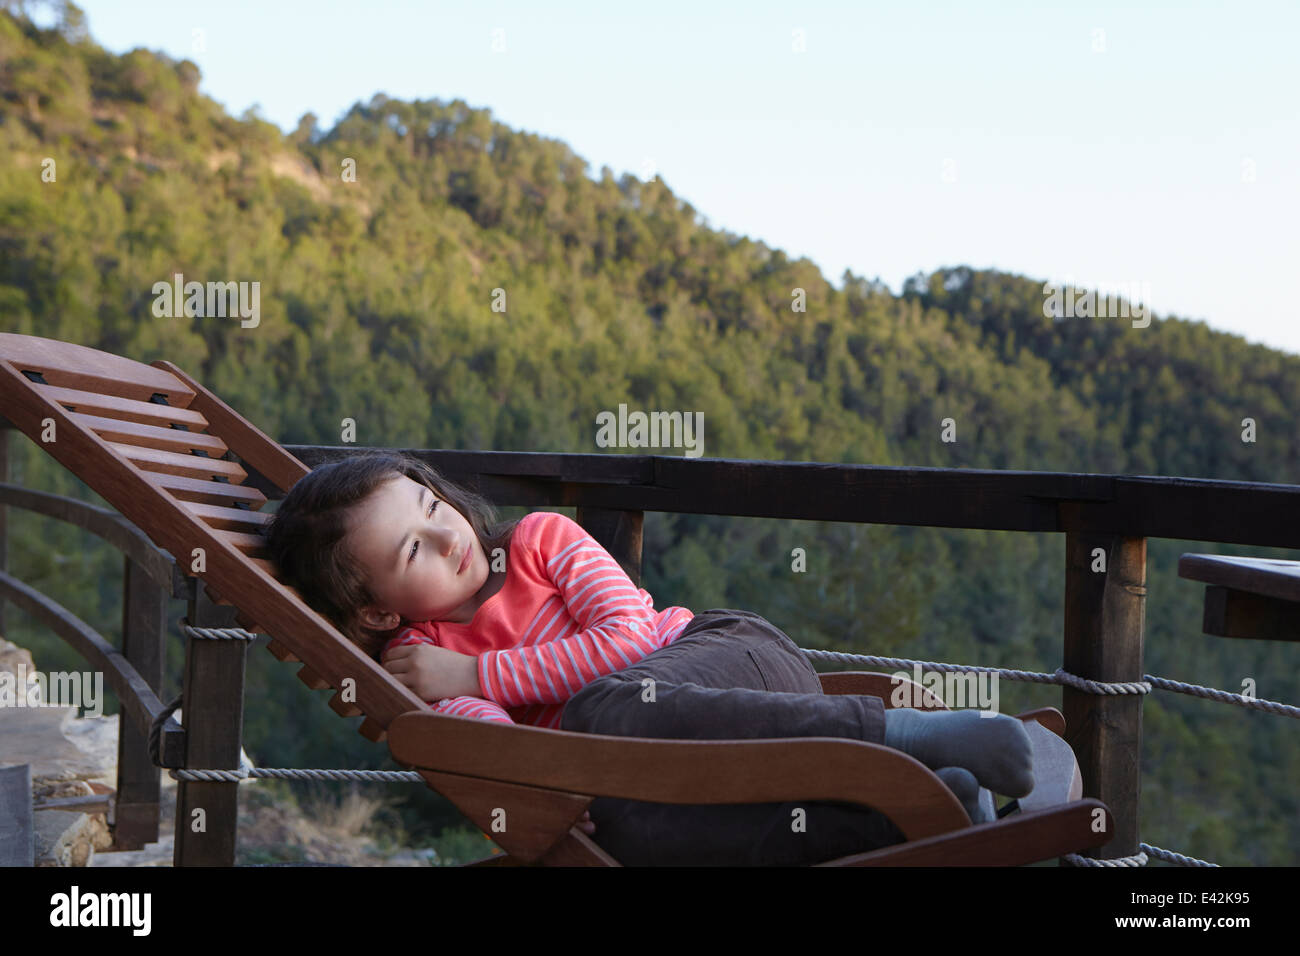 Young girl curled up on balcony deckchair gazing upward - Stock Image